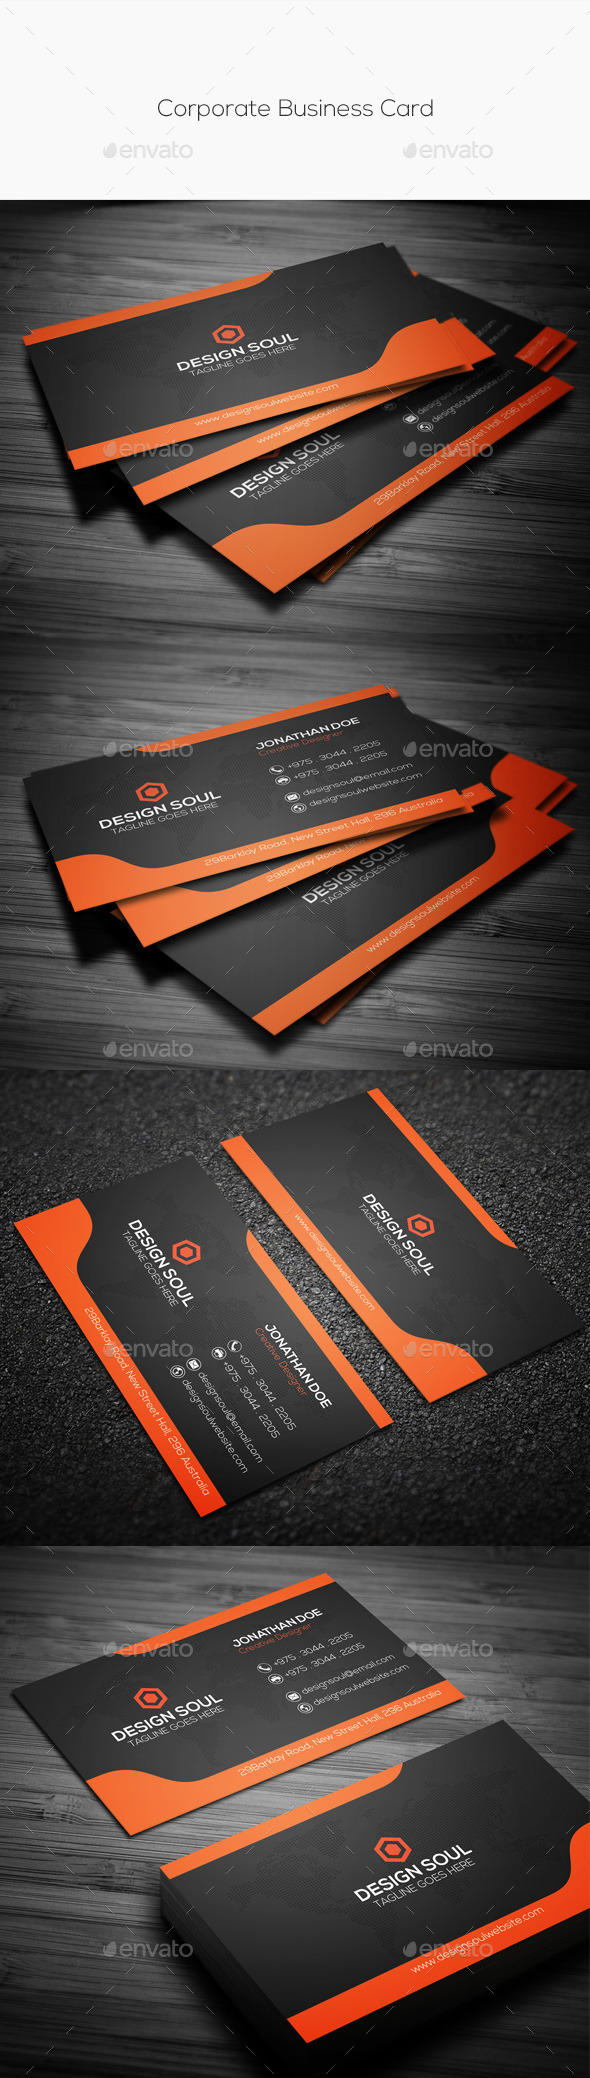 GraphicRiver Corporate Business Card 10349712